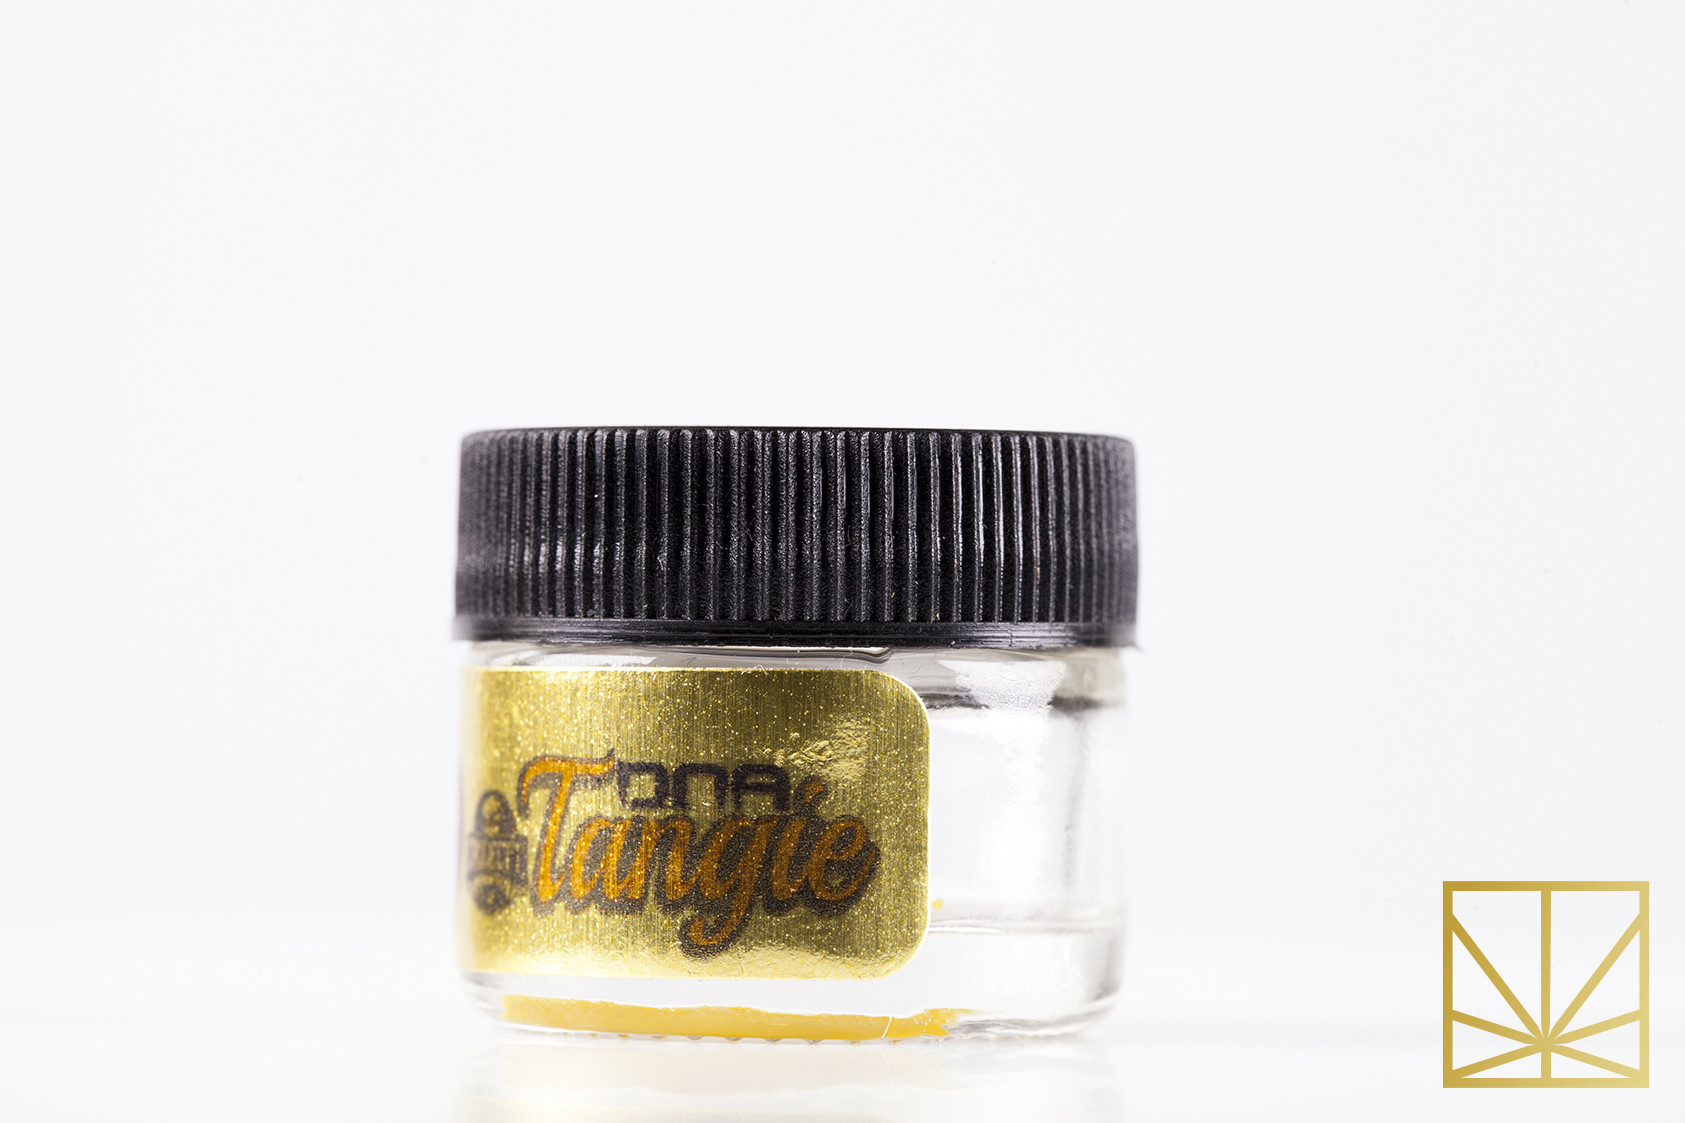 Tangie Live Resin